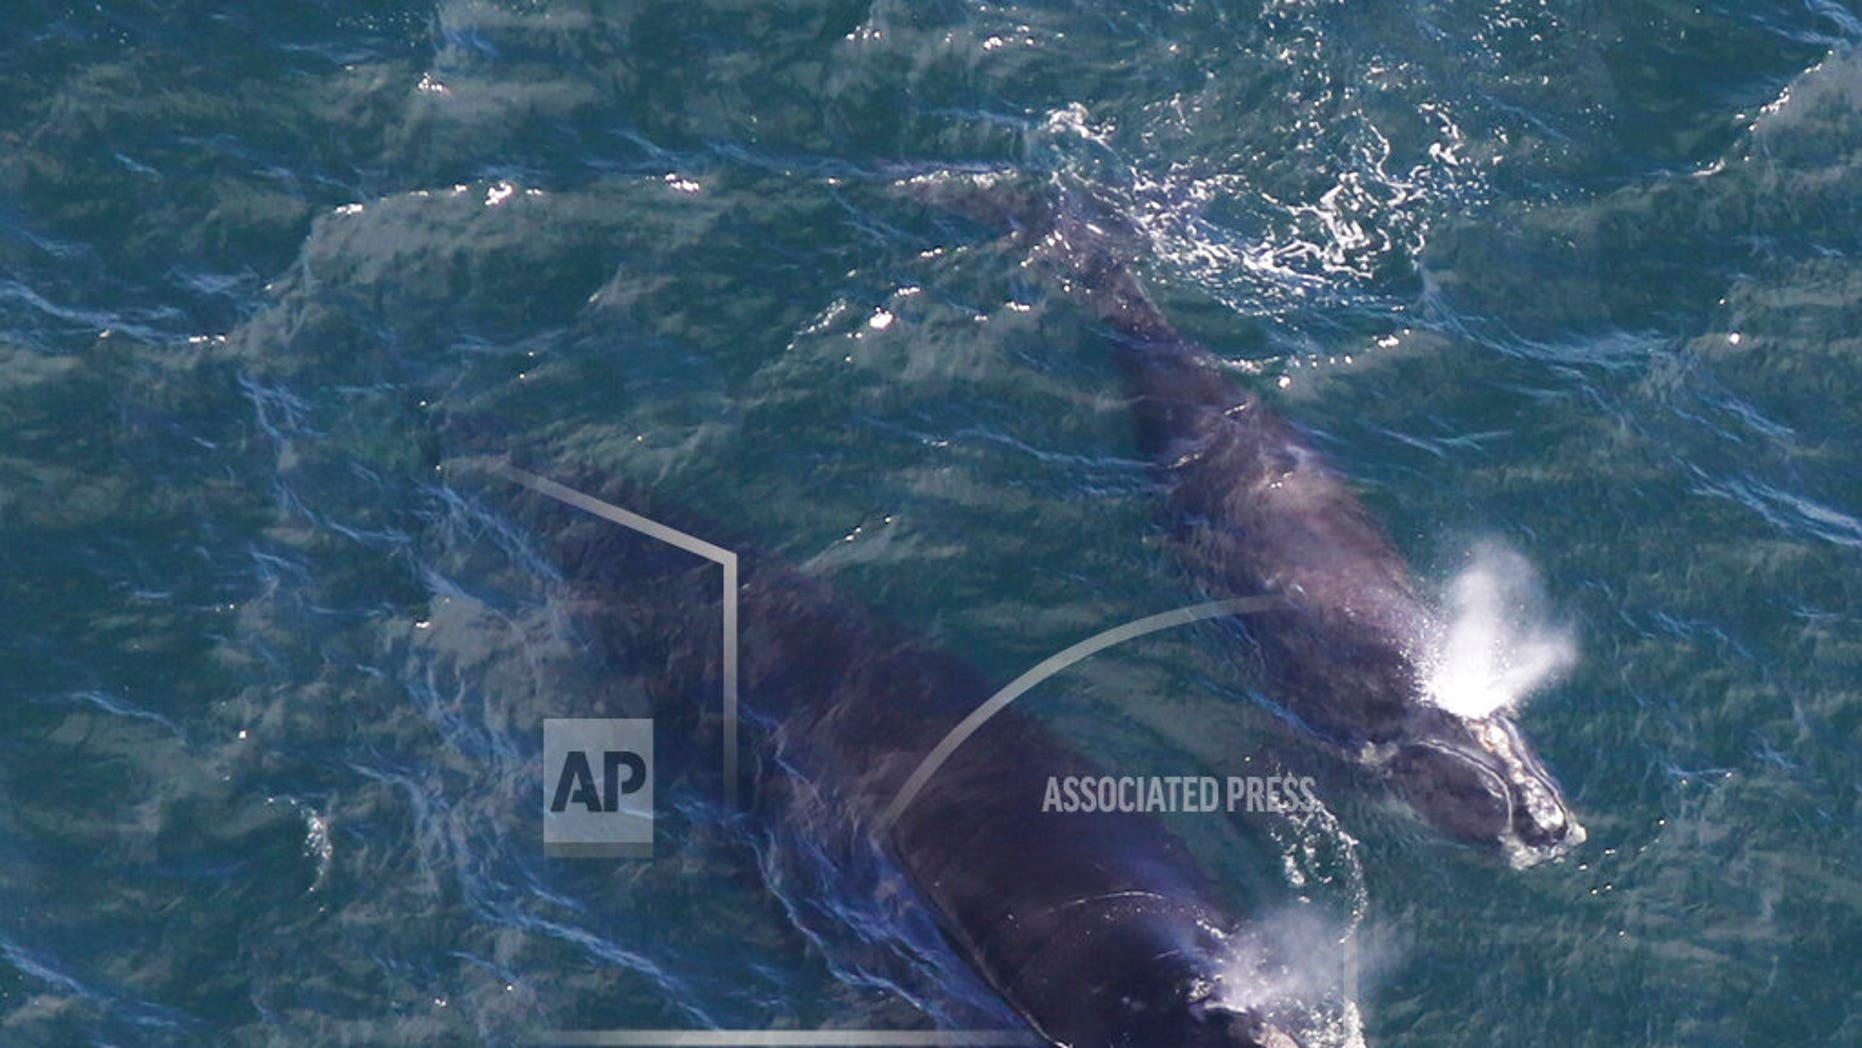 In this photo taken Thursday by the Center for Coastal Studies, a baby whale swims with her mother in Cape Cod Bay, off Massachusetts. Researchers say they have recently located three right whale calves in the bay, after finding none in 2018. Whales are among the rarest in the world. (Amy James / Coastal Studies Center / Perm. 19315-1 via NOAA AP)